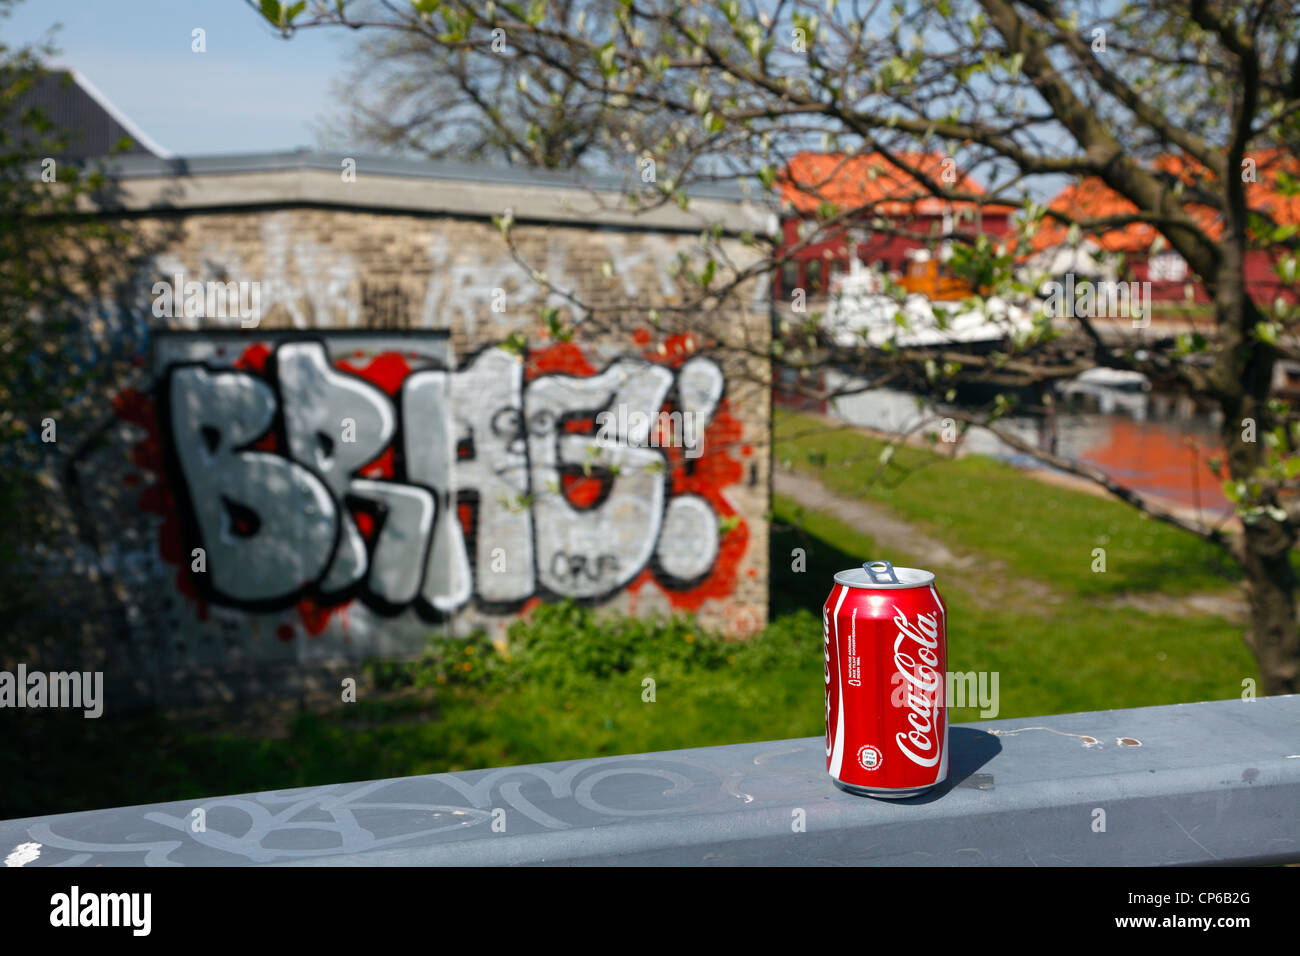 Red Coca Cola can standing on a grey handrail in background a canal, blooming tree, and BRAG! as graffiti on a sunny - Stock Image